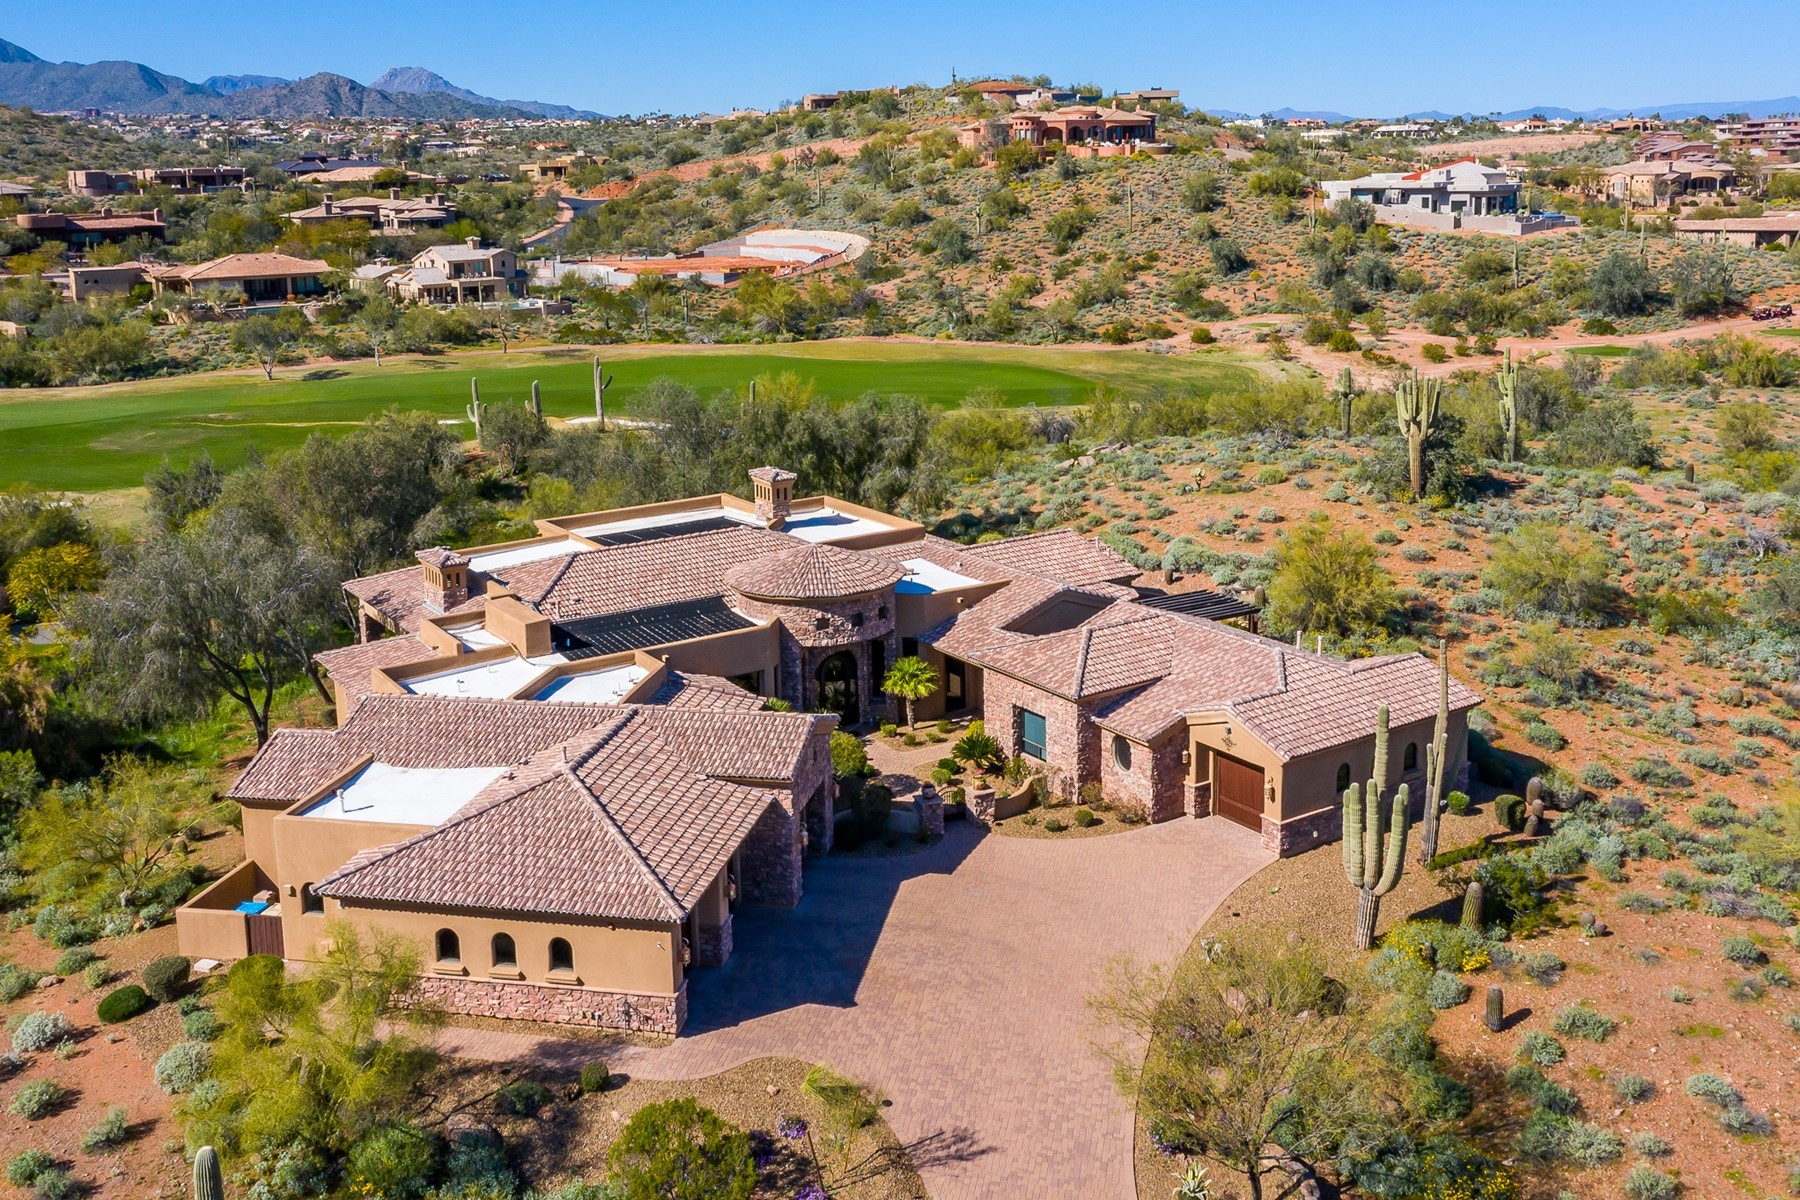 Single Family Homes for Active at FireRock Country Club 16054 E TOMBSTONE AVE Fountain Hills, Arizona 85268 United States